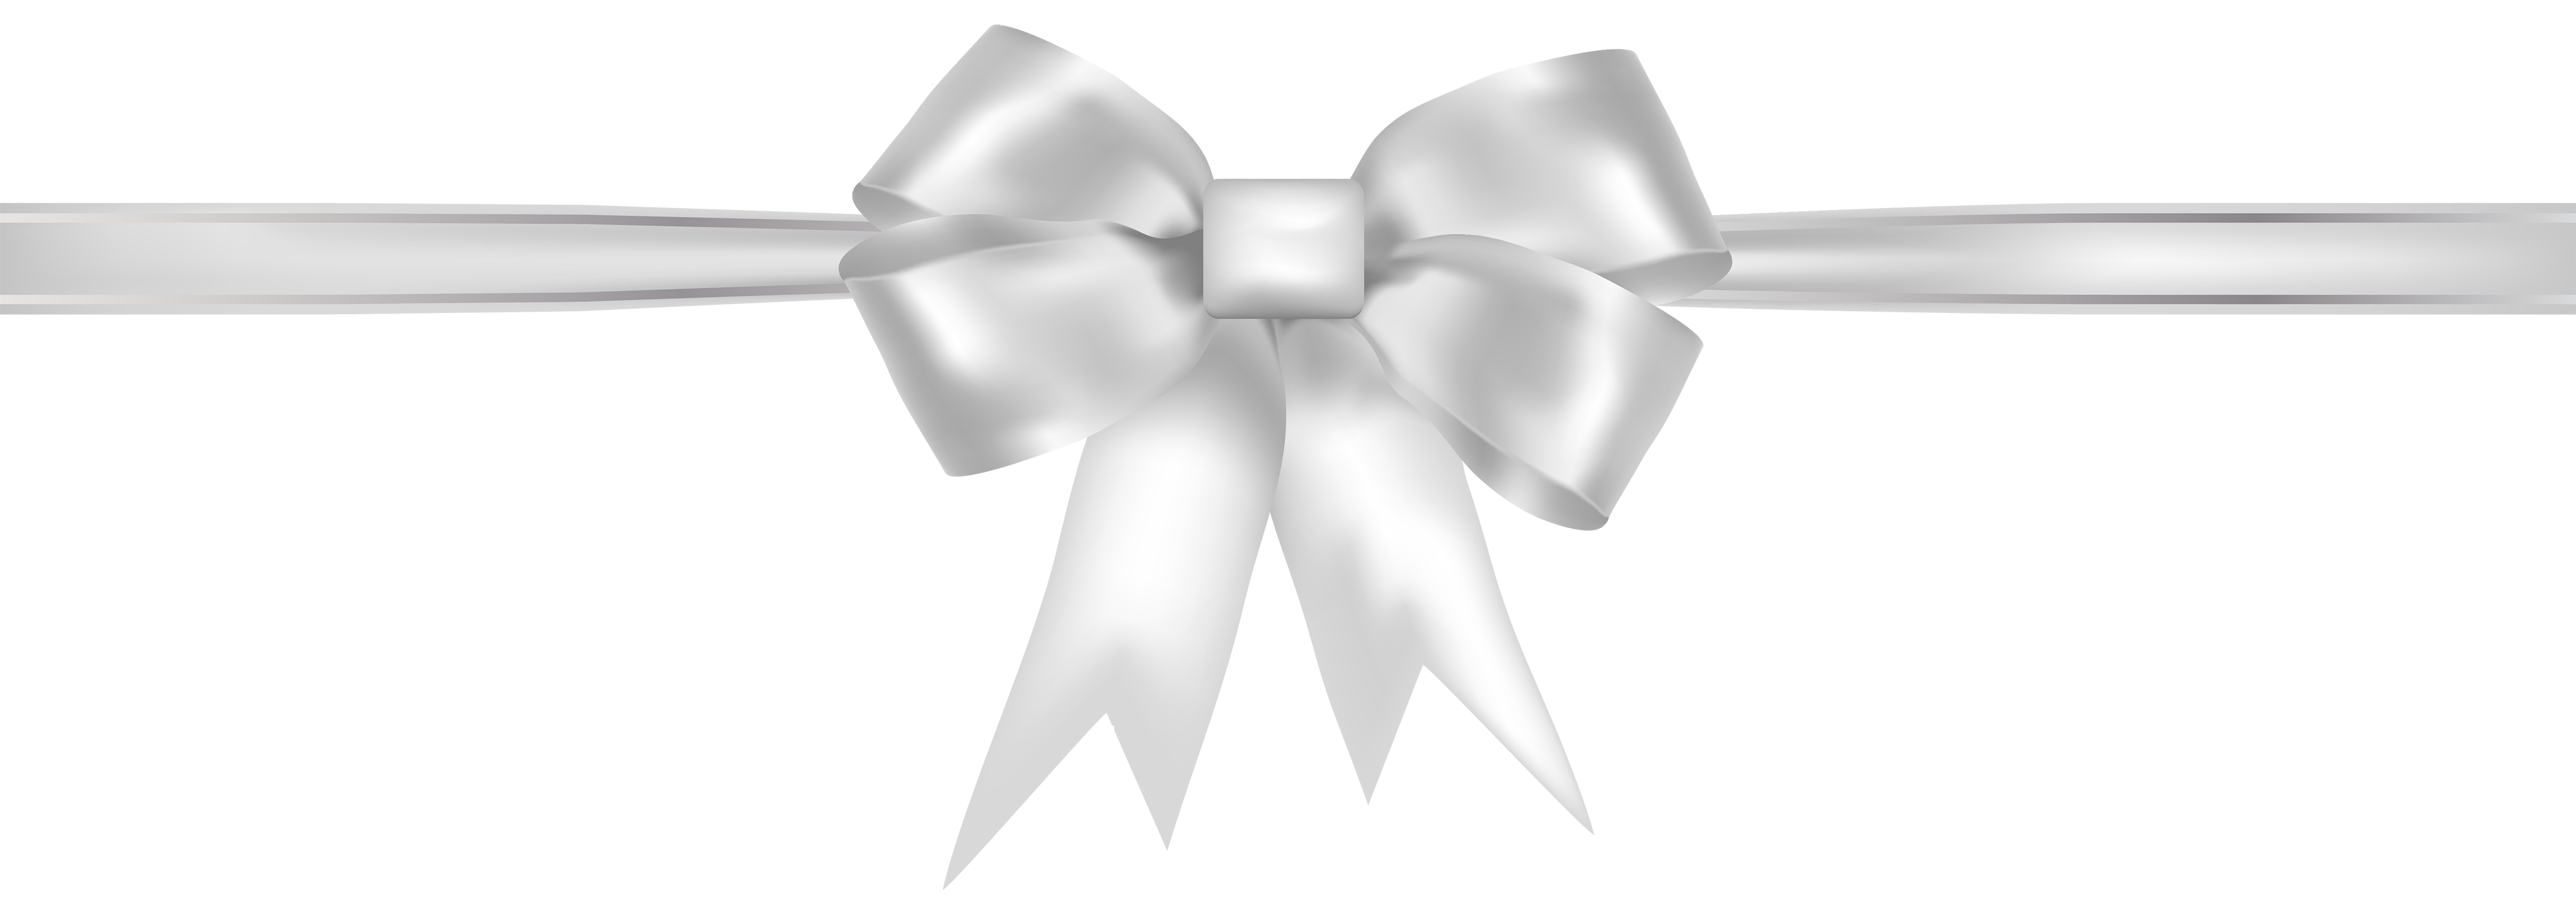 Clipart bow silver, Clipart bow silver Transparent FREE for.